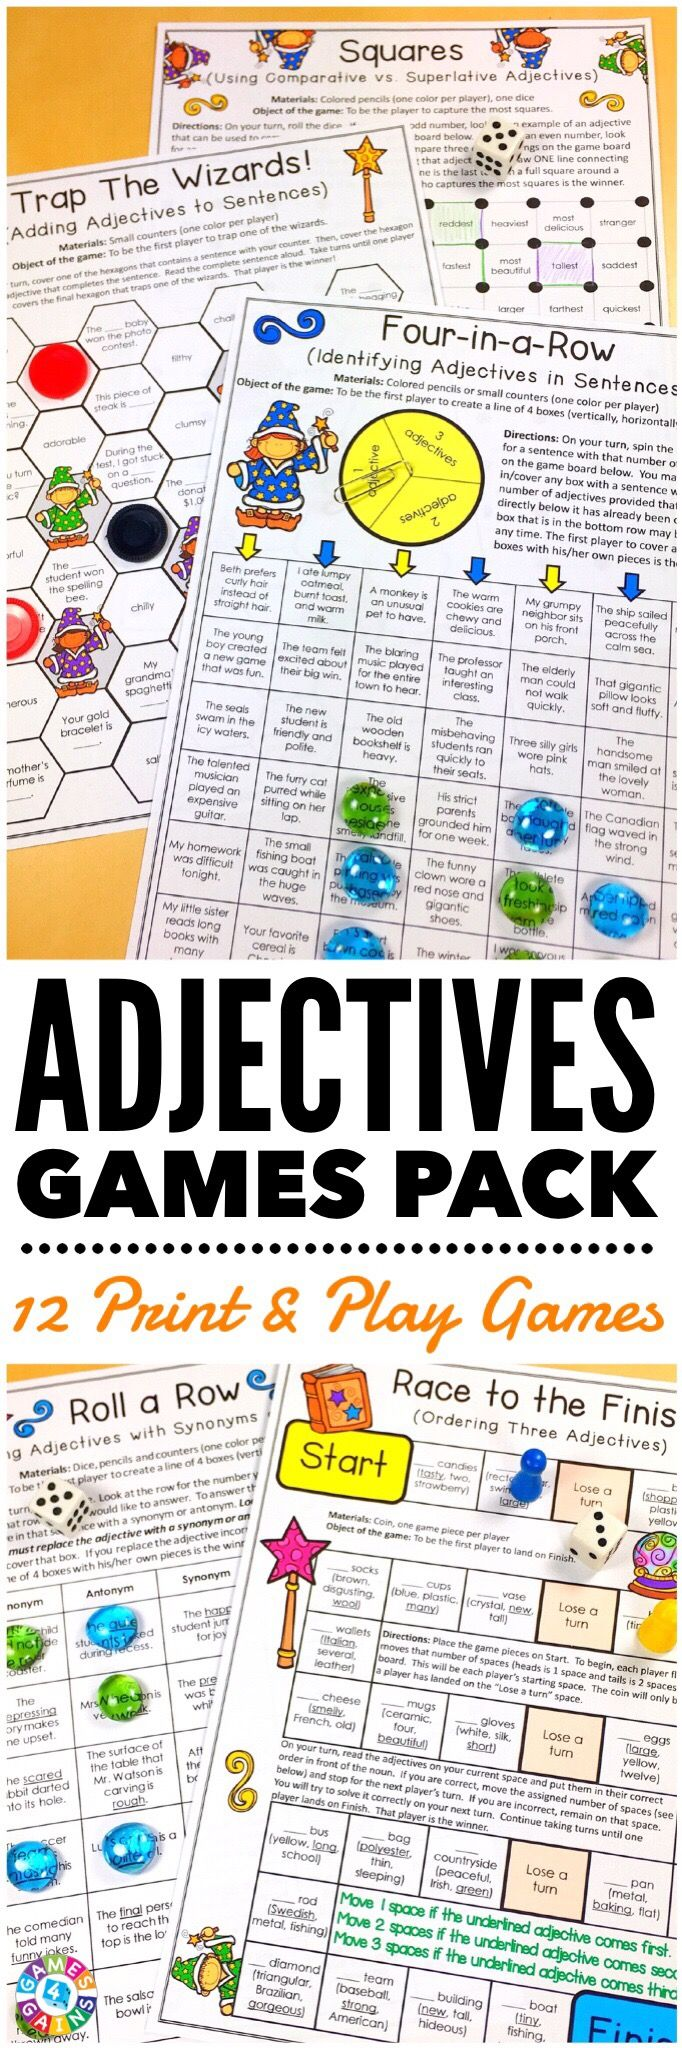 """LOVE these low-prep games! My students have so much fun playing them!"" This Adjectives Games Pack contains 12 fun and engaging printable board games to help students to practice common adjectives, proper adjectives, comparative adjectives, superlative adjectives, and ordering adjectives!"